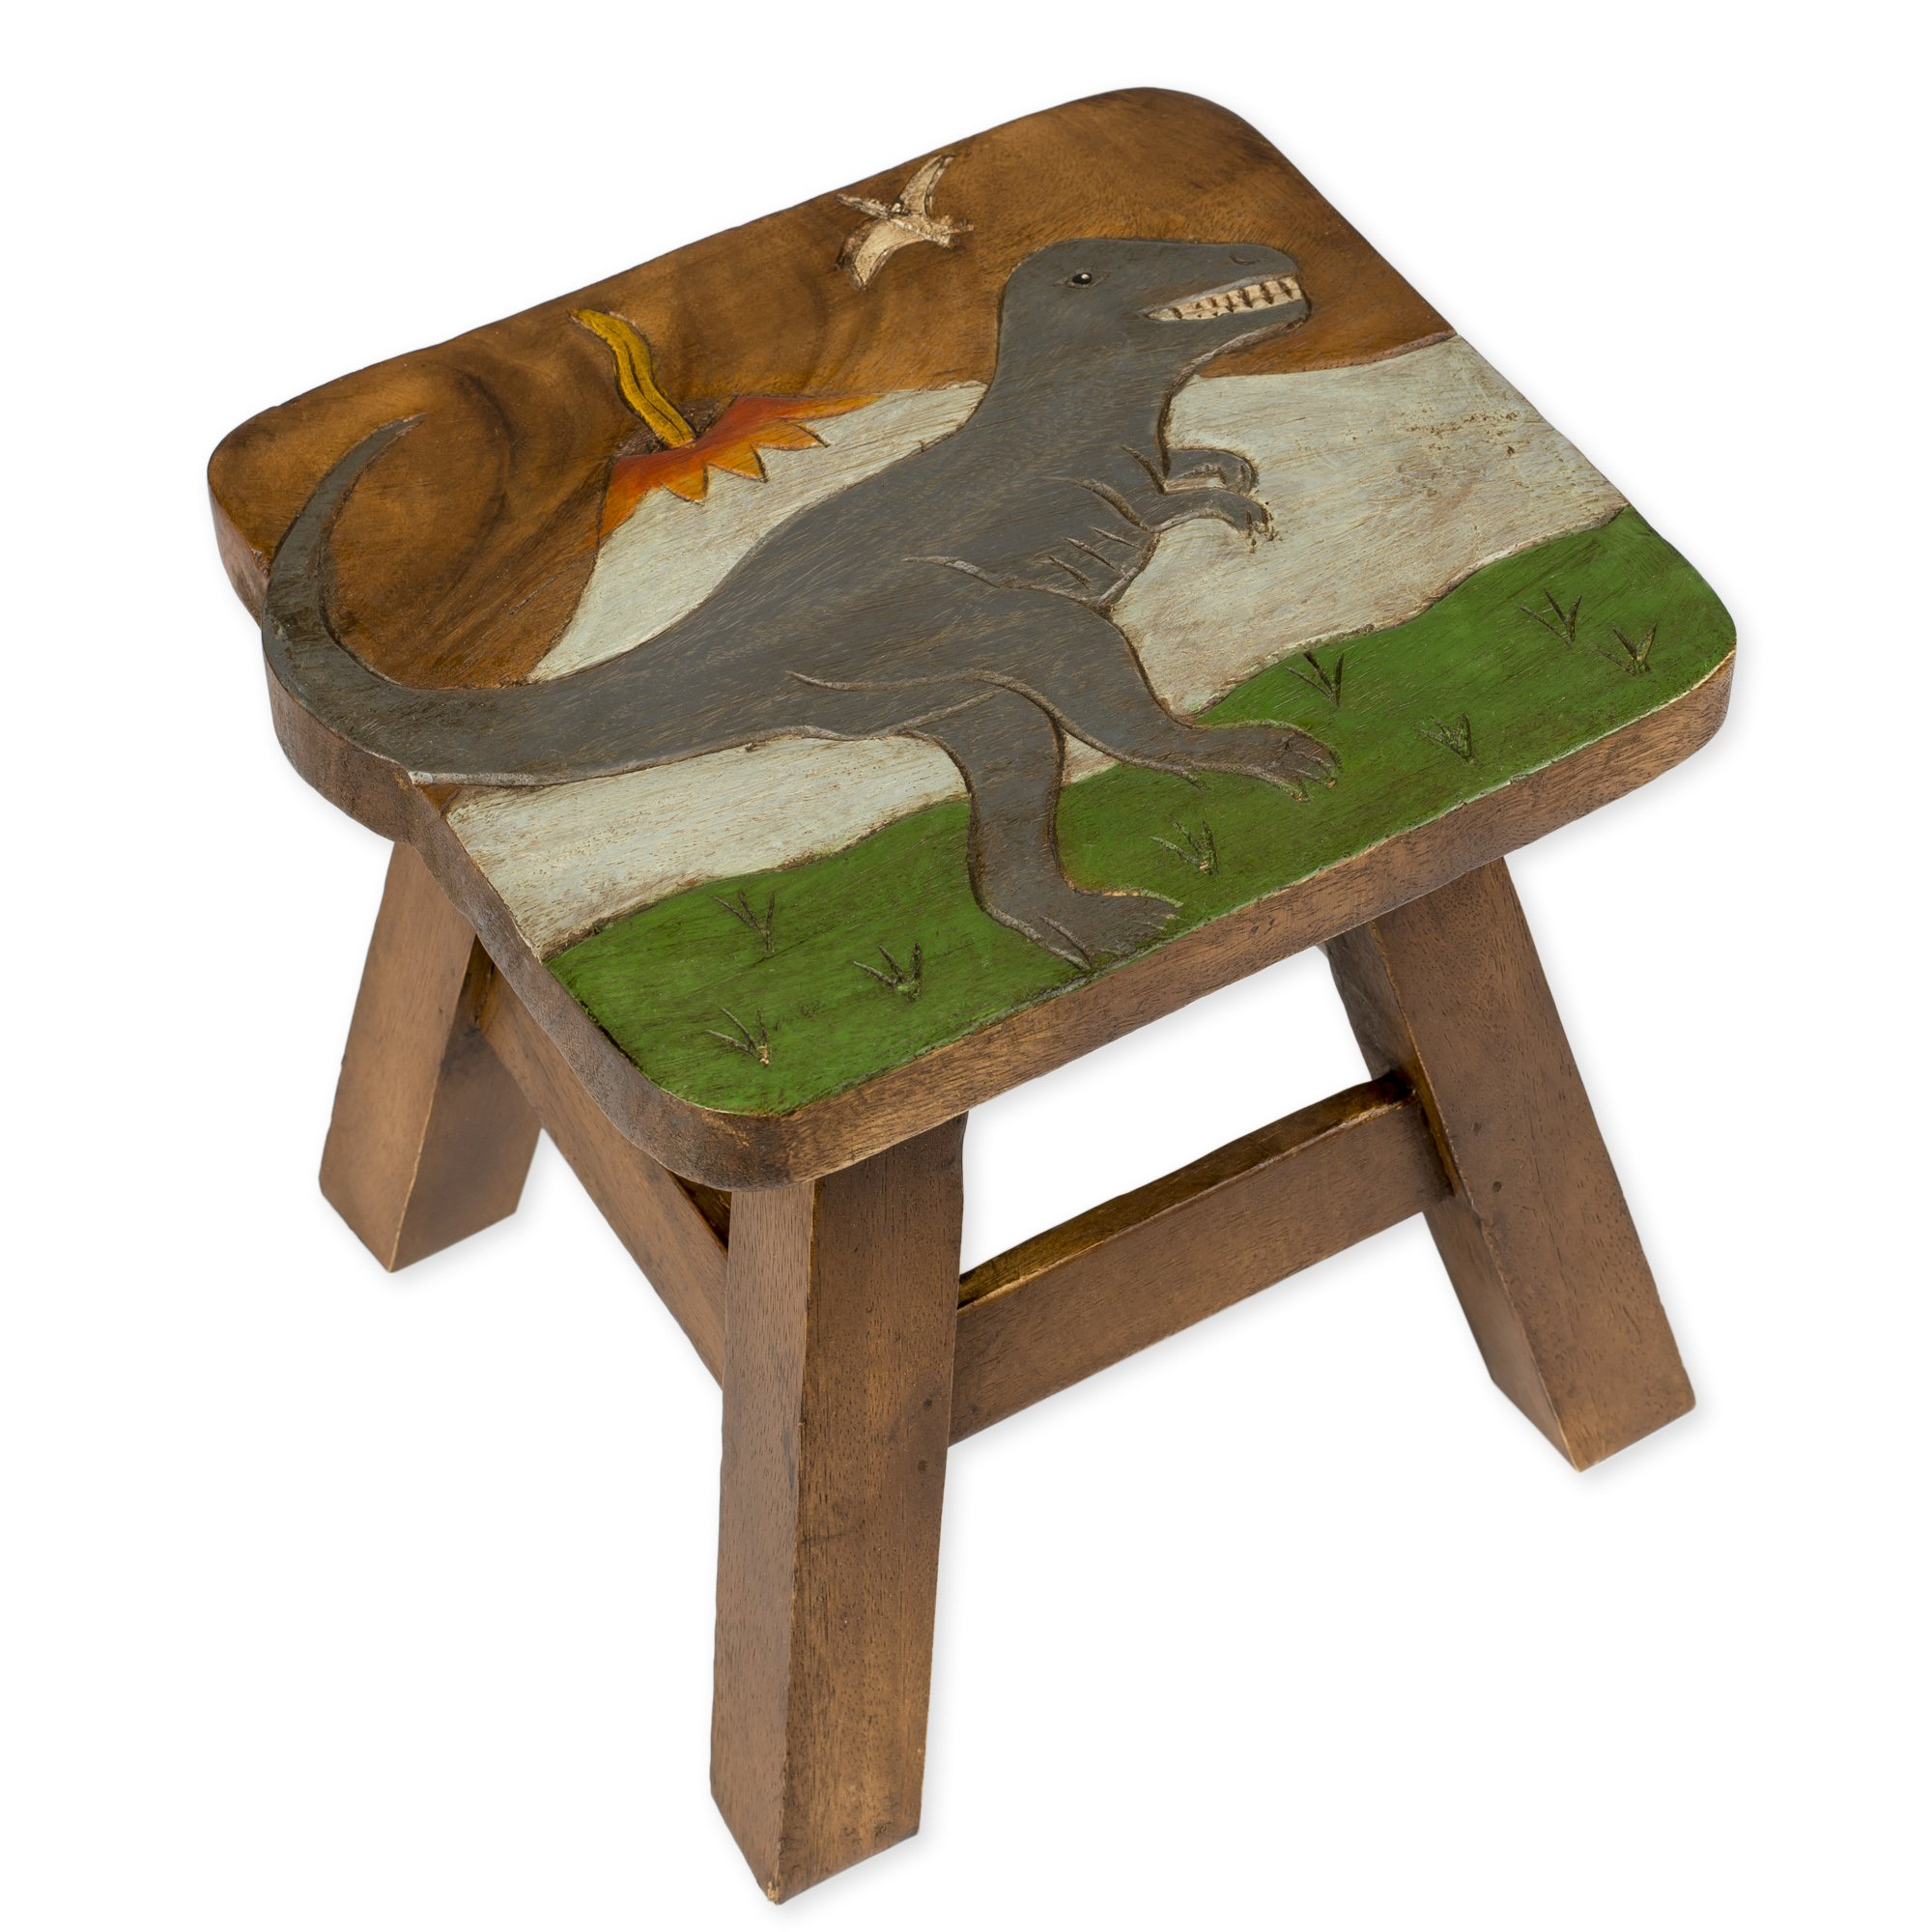 Tyrannosaurus Rex Dinosaur Design Hand Carved Acacia Hardwood Decorative Short Stool